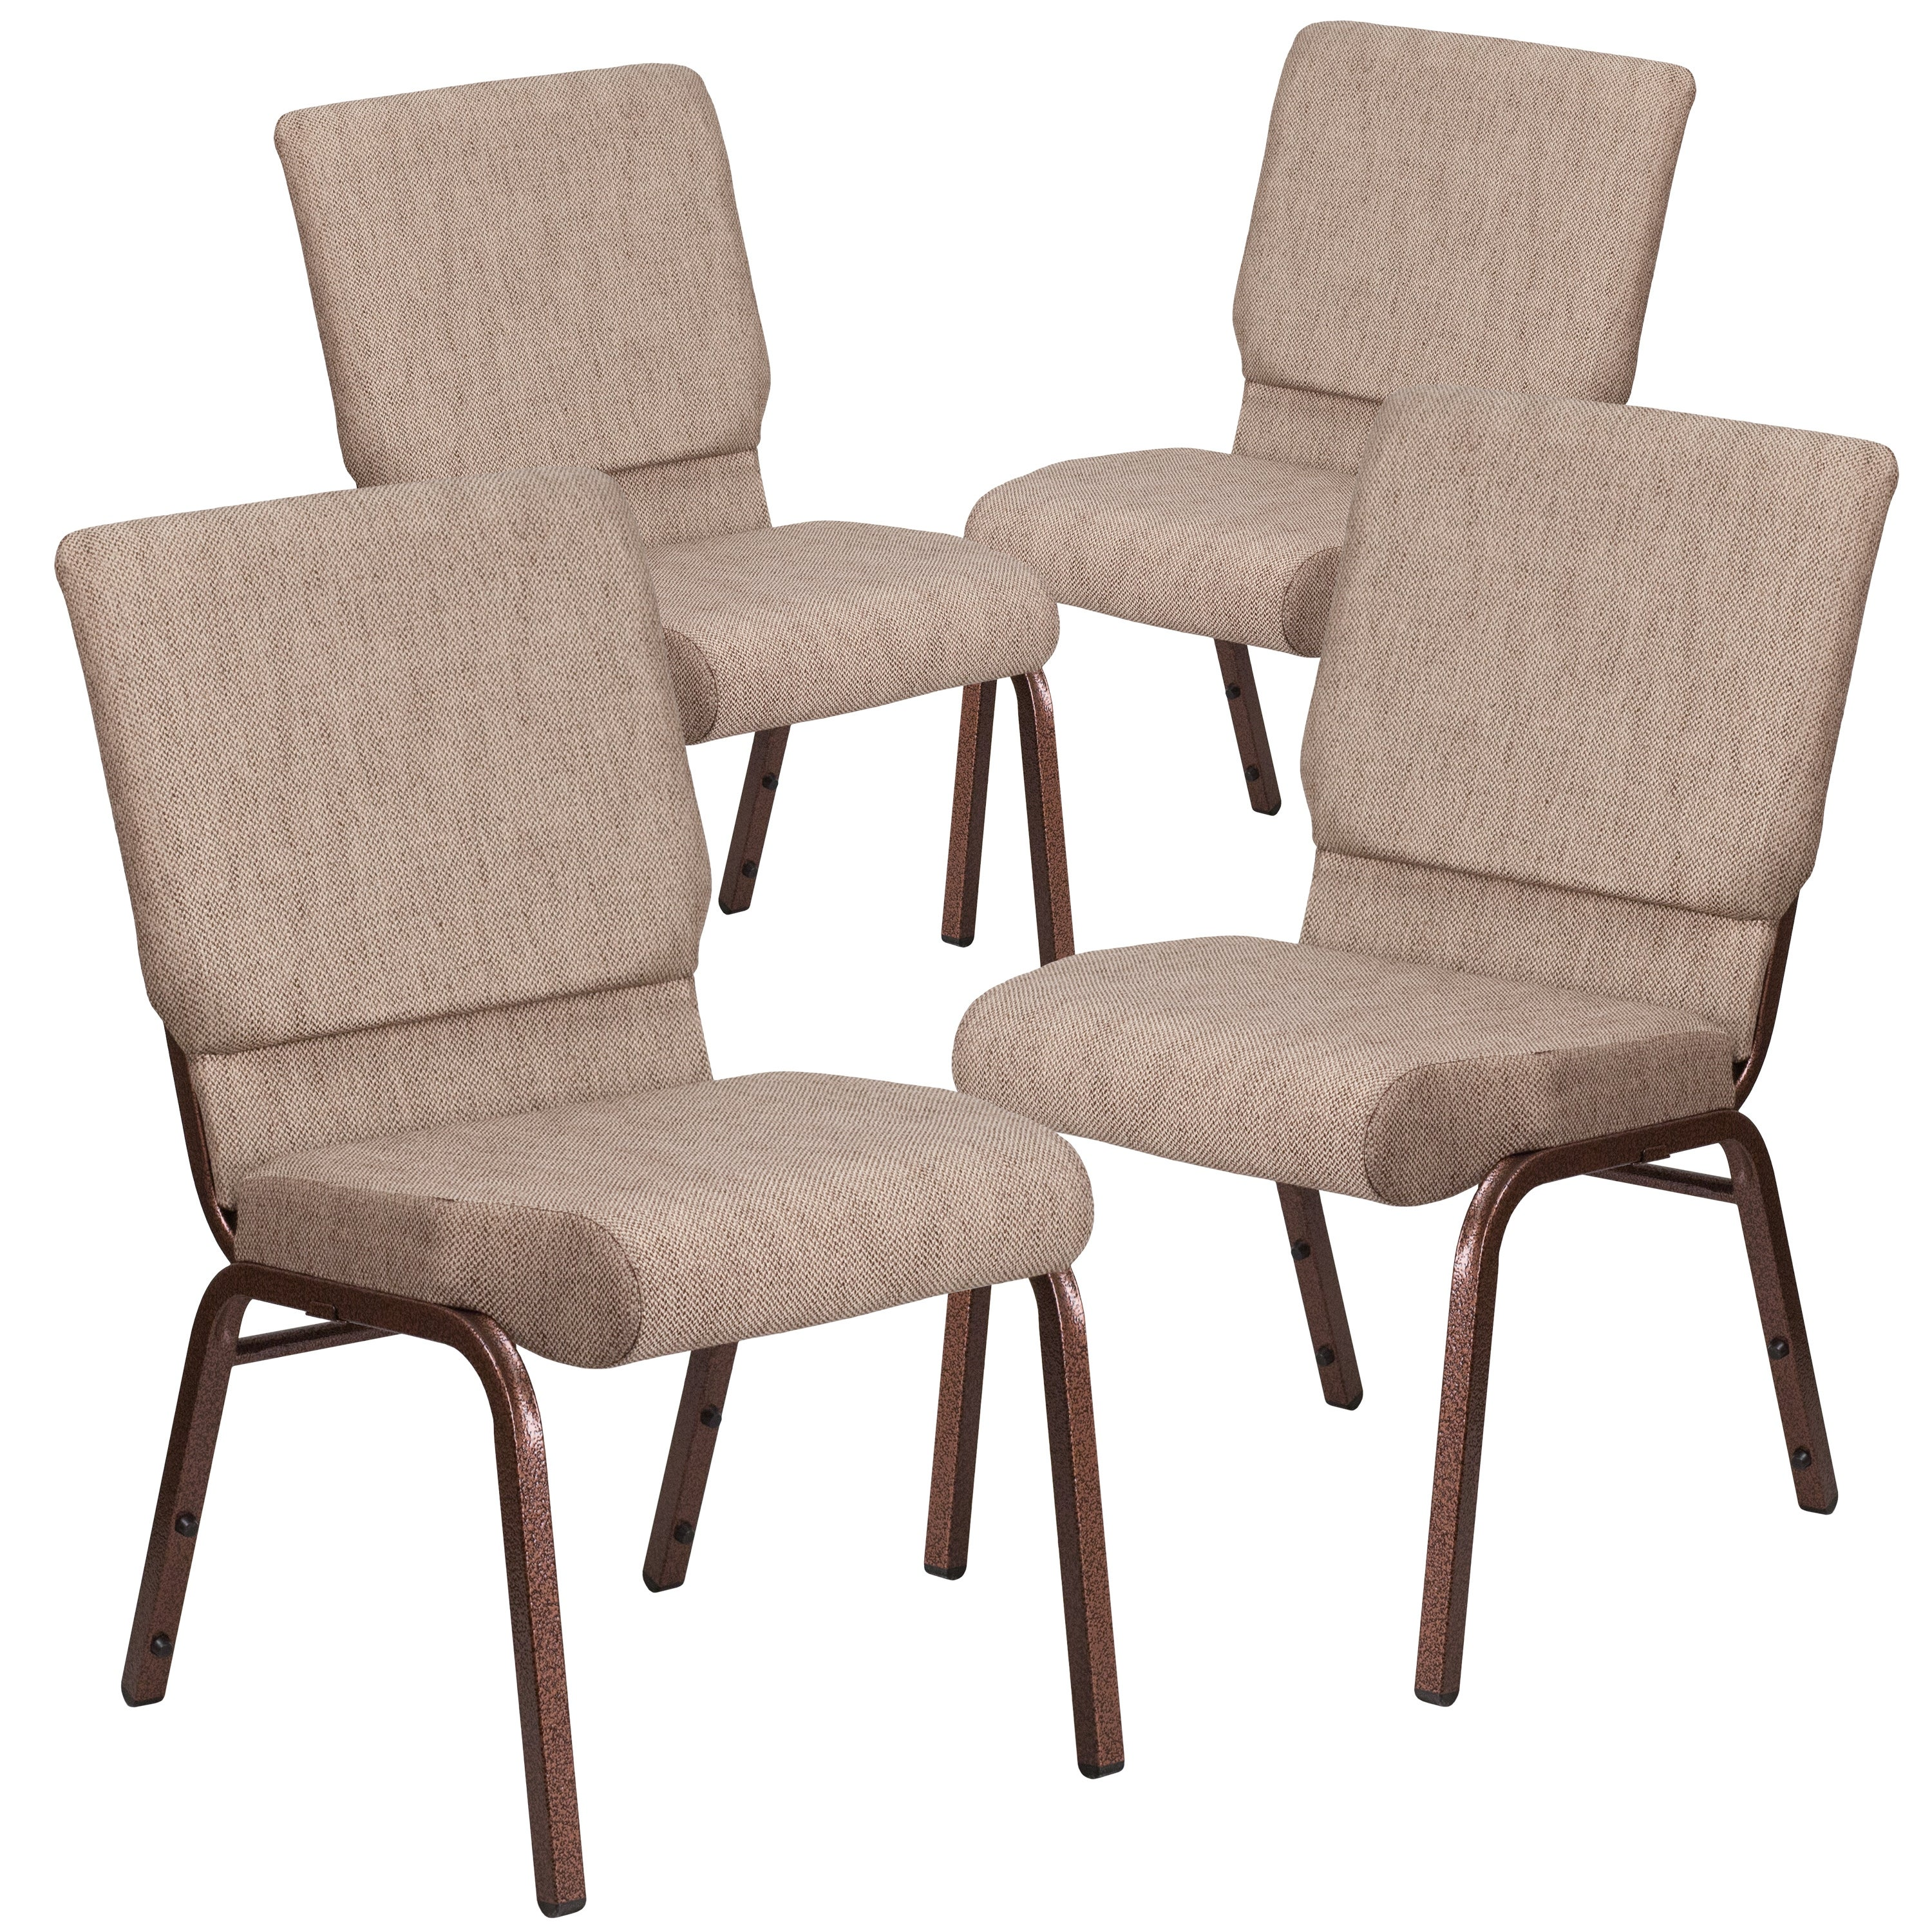 thumbnail 8 - 4-Pack-18-5-034-W-Stacking-Church-Chair-in-Fabric-Copper-Vein